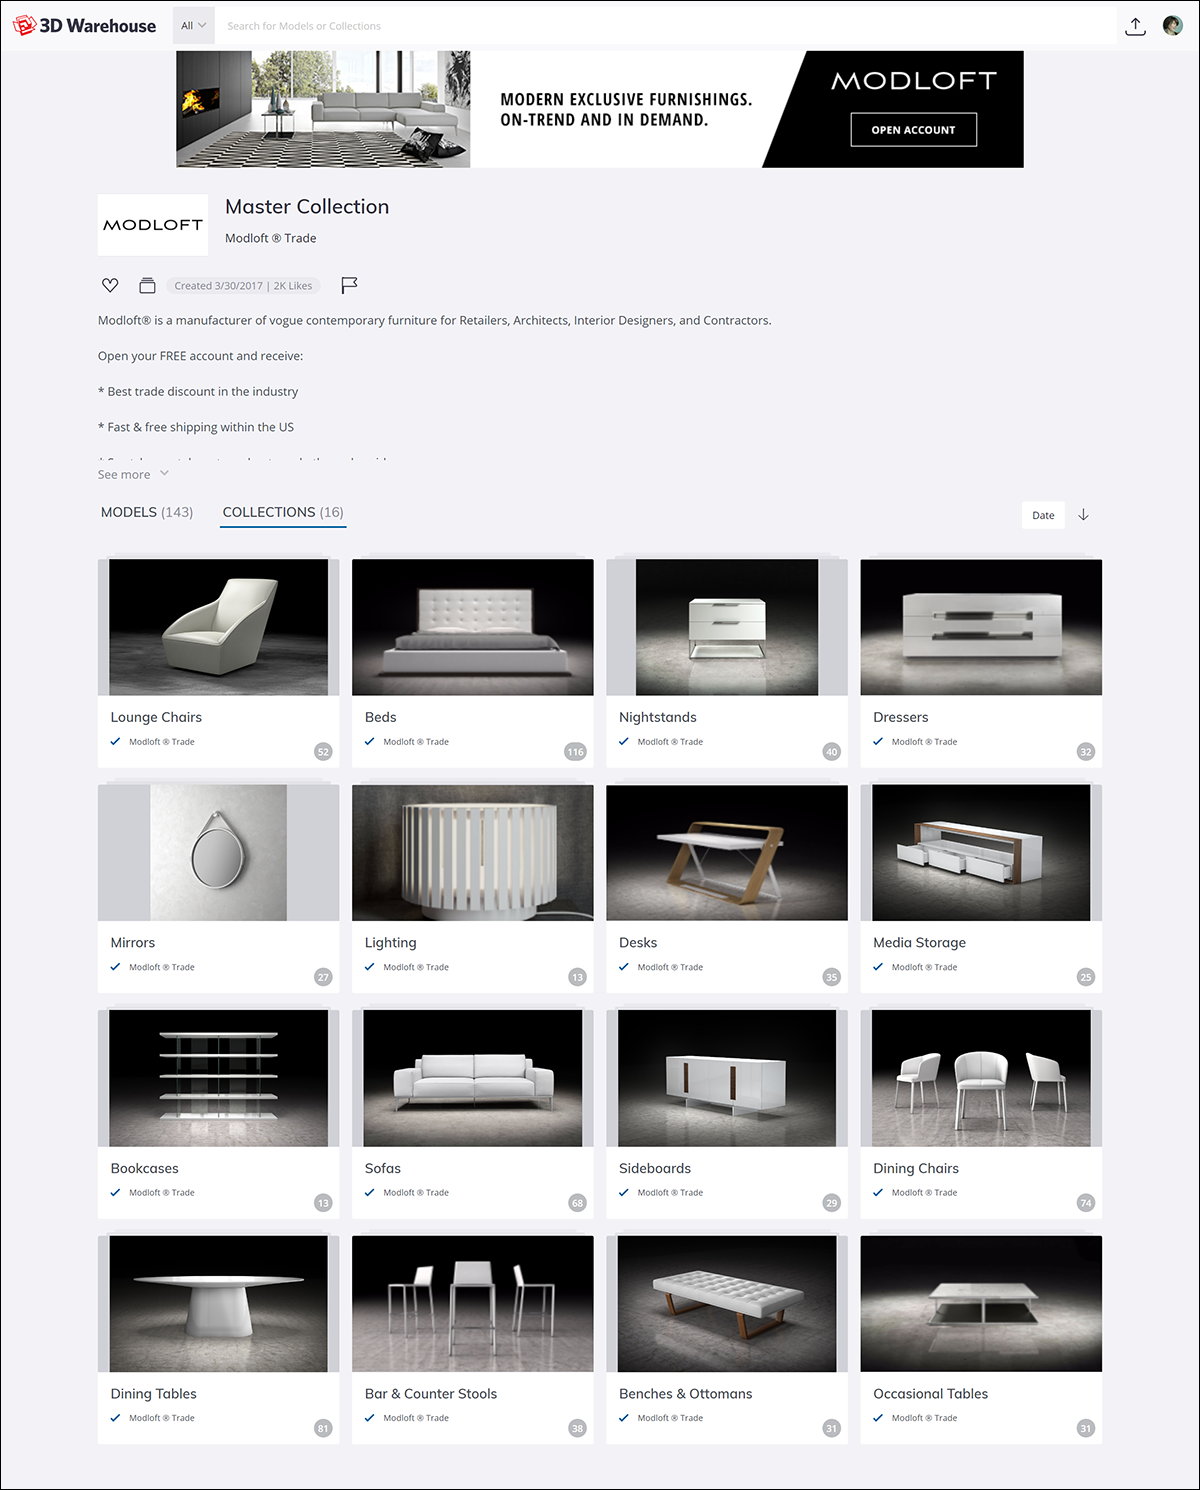 The 3D Warehouse catalog features showcase your company products